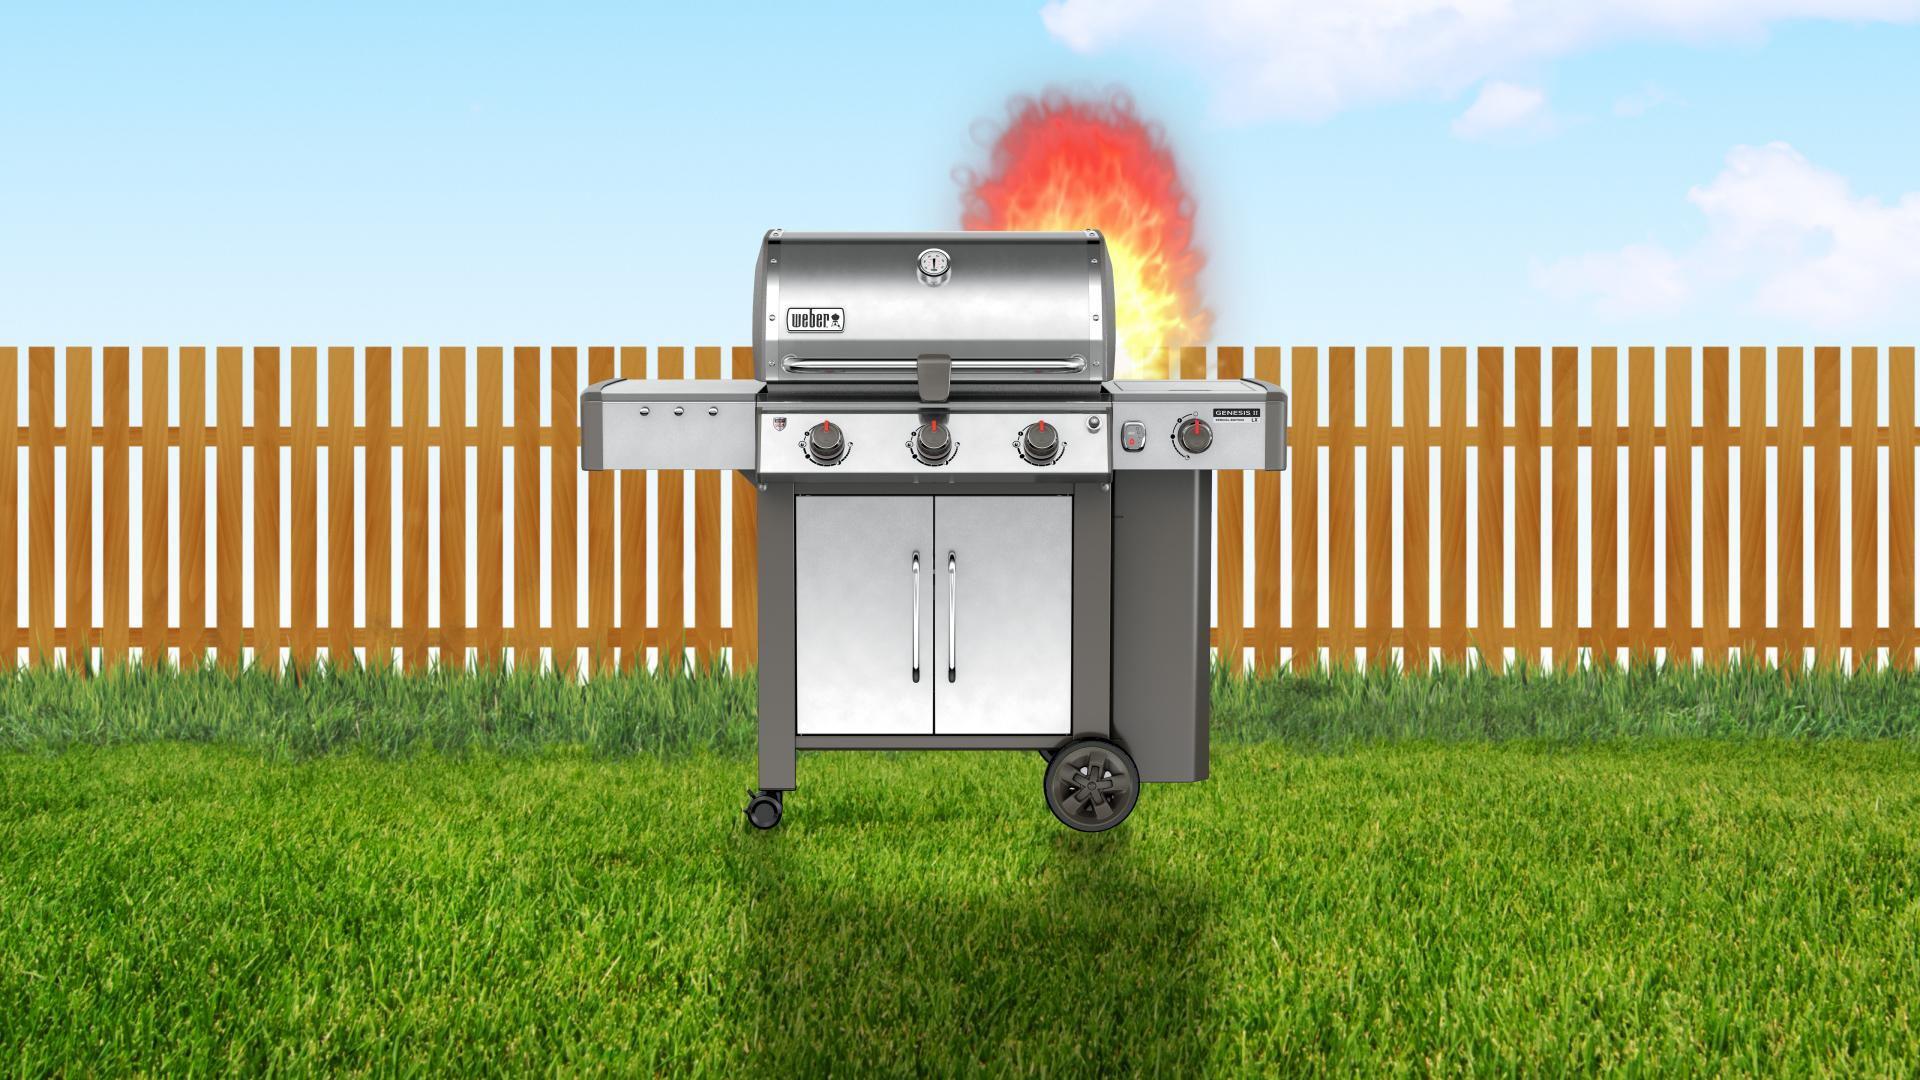 Where to Put Your Stainless Steel Grill to Make It Last